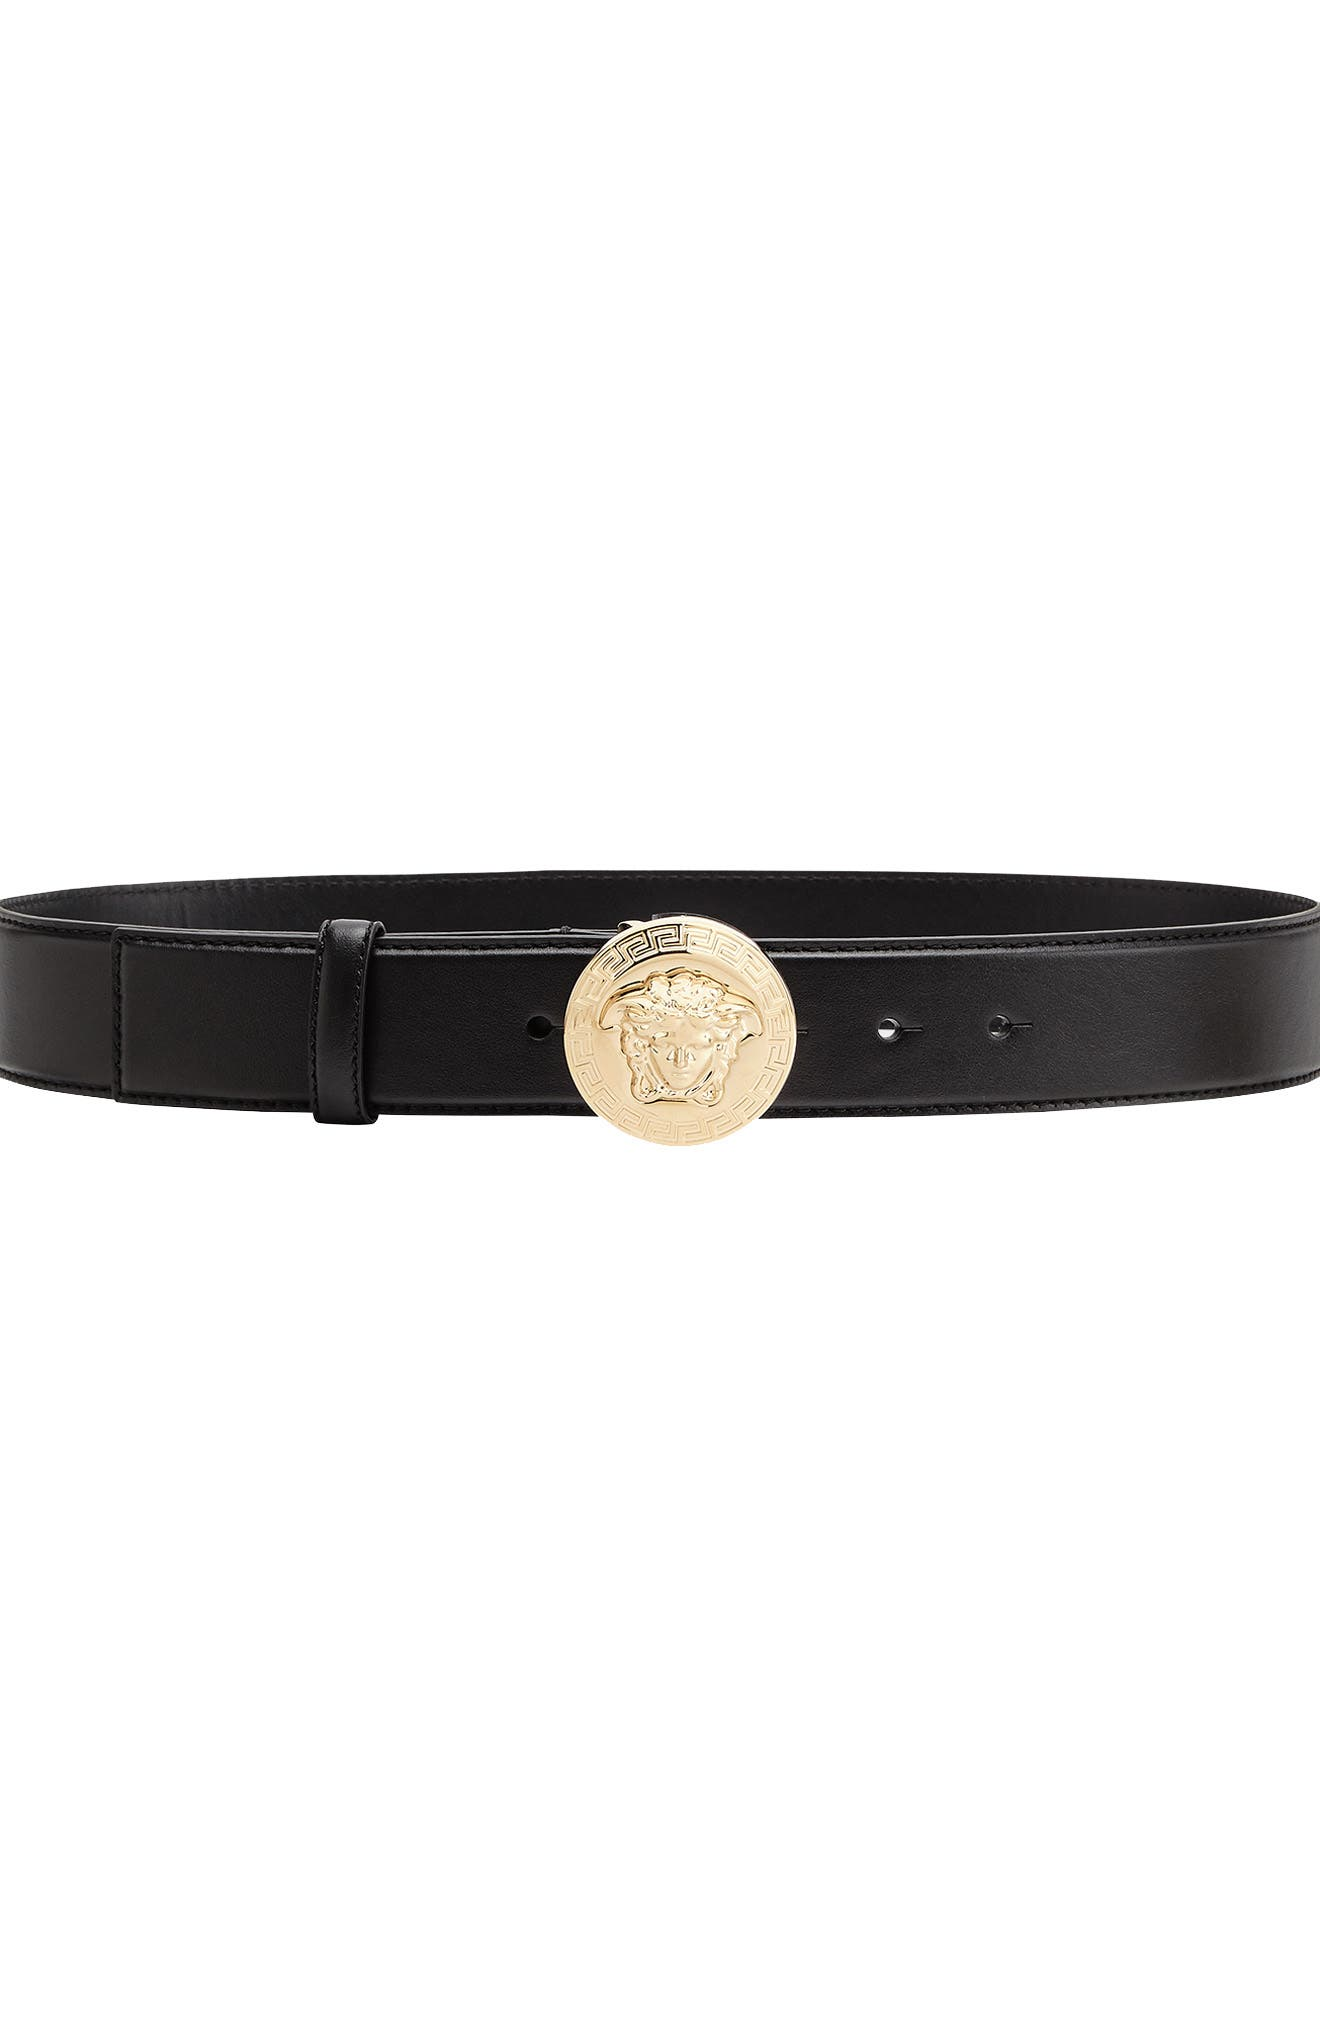 Versace First Line Medusa Coin Leather Belt, Nero/ Gold Tribute